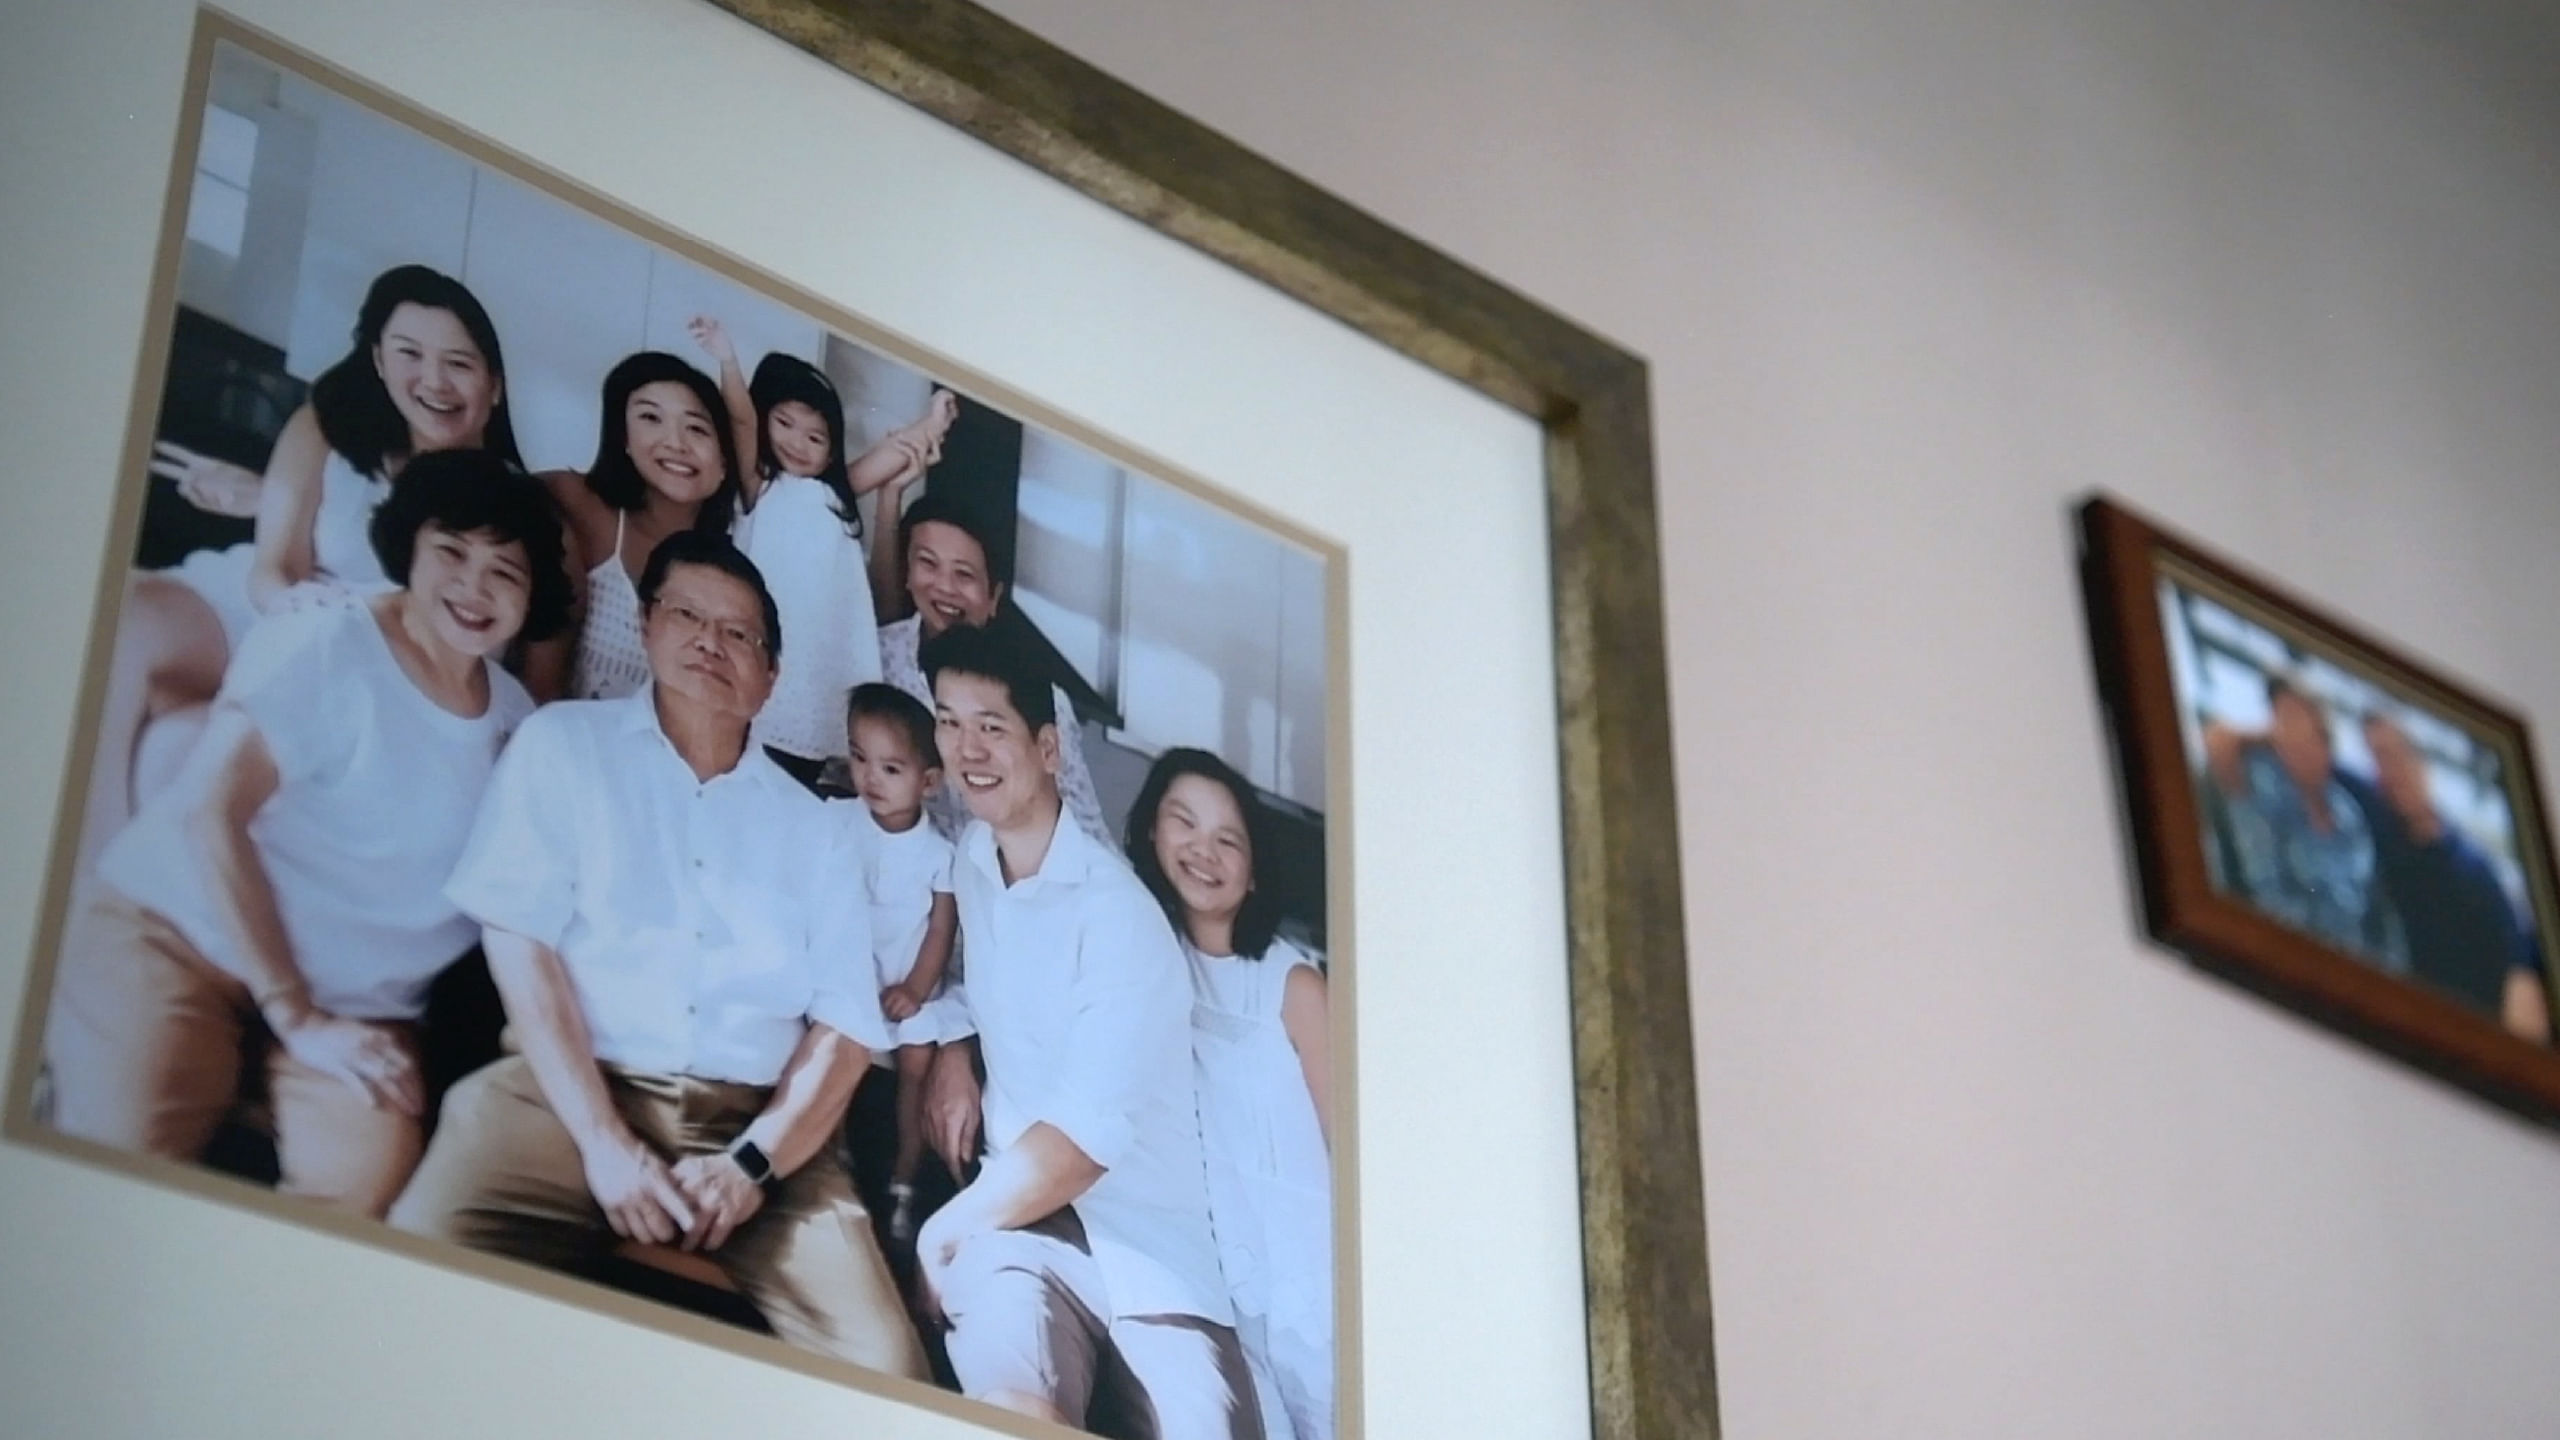 A family photo on the wall at Steven's home. The family decided to take photographs together when Steven was diagnosed.